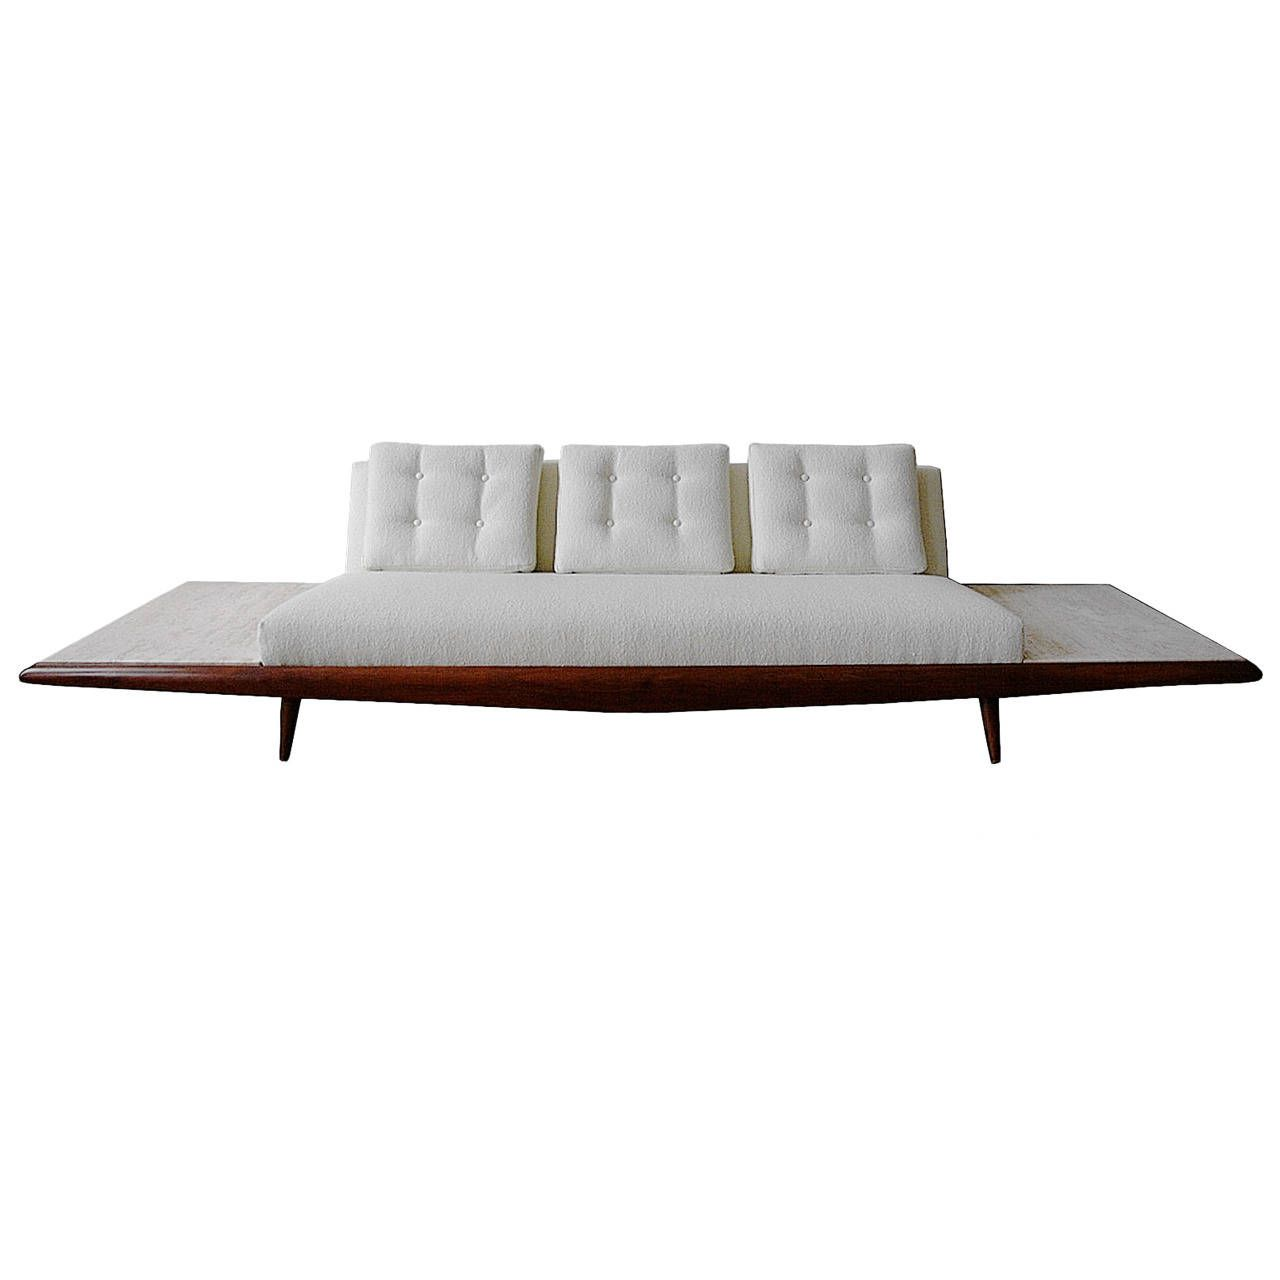 Adrian Pearsall Sofa with Travertine End Table Inserts